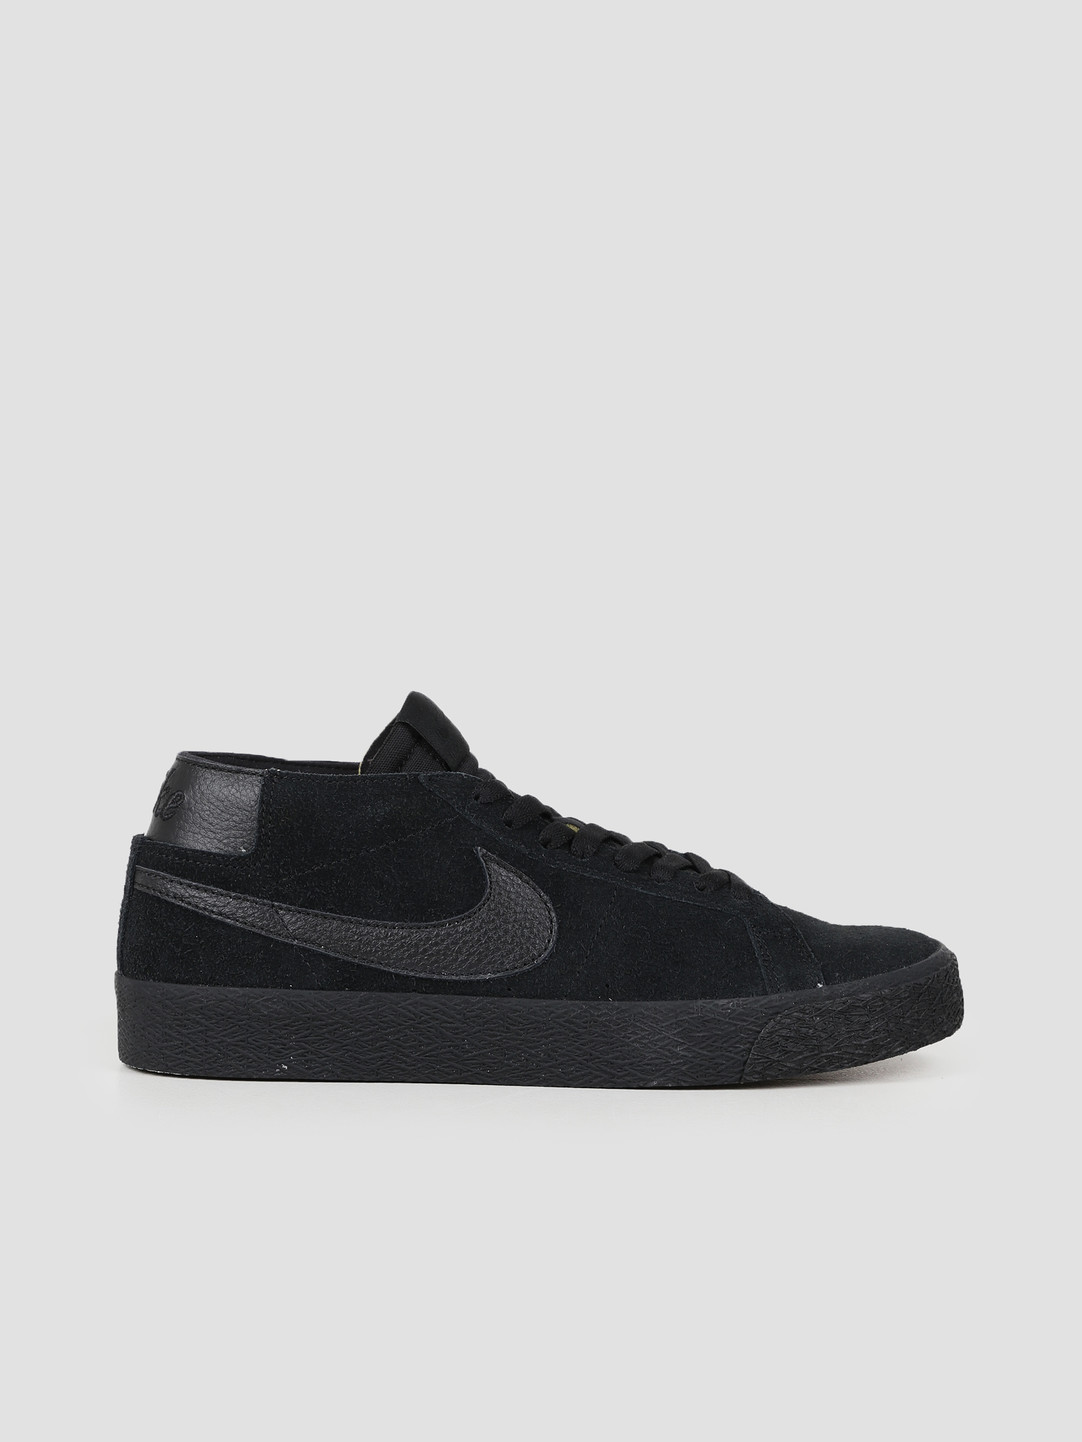 website for discount a few days away coupon codes Nike SB Zoom Blazer Chukka Black Black AT9765-004